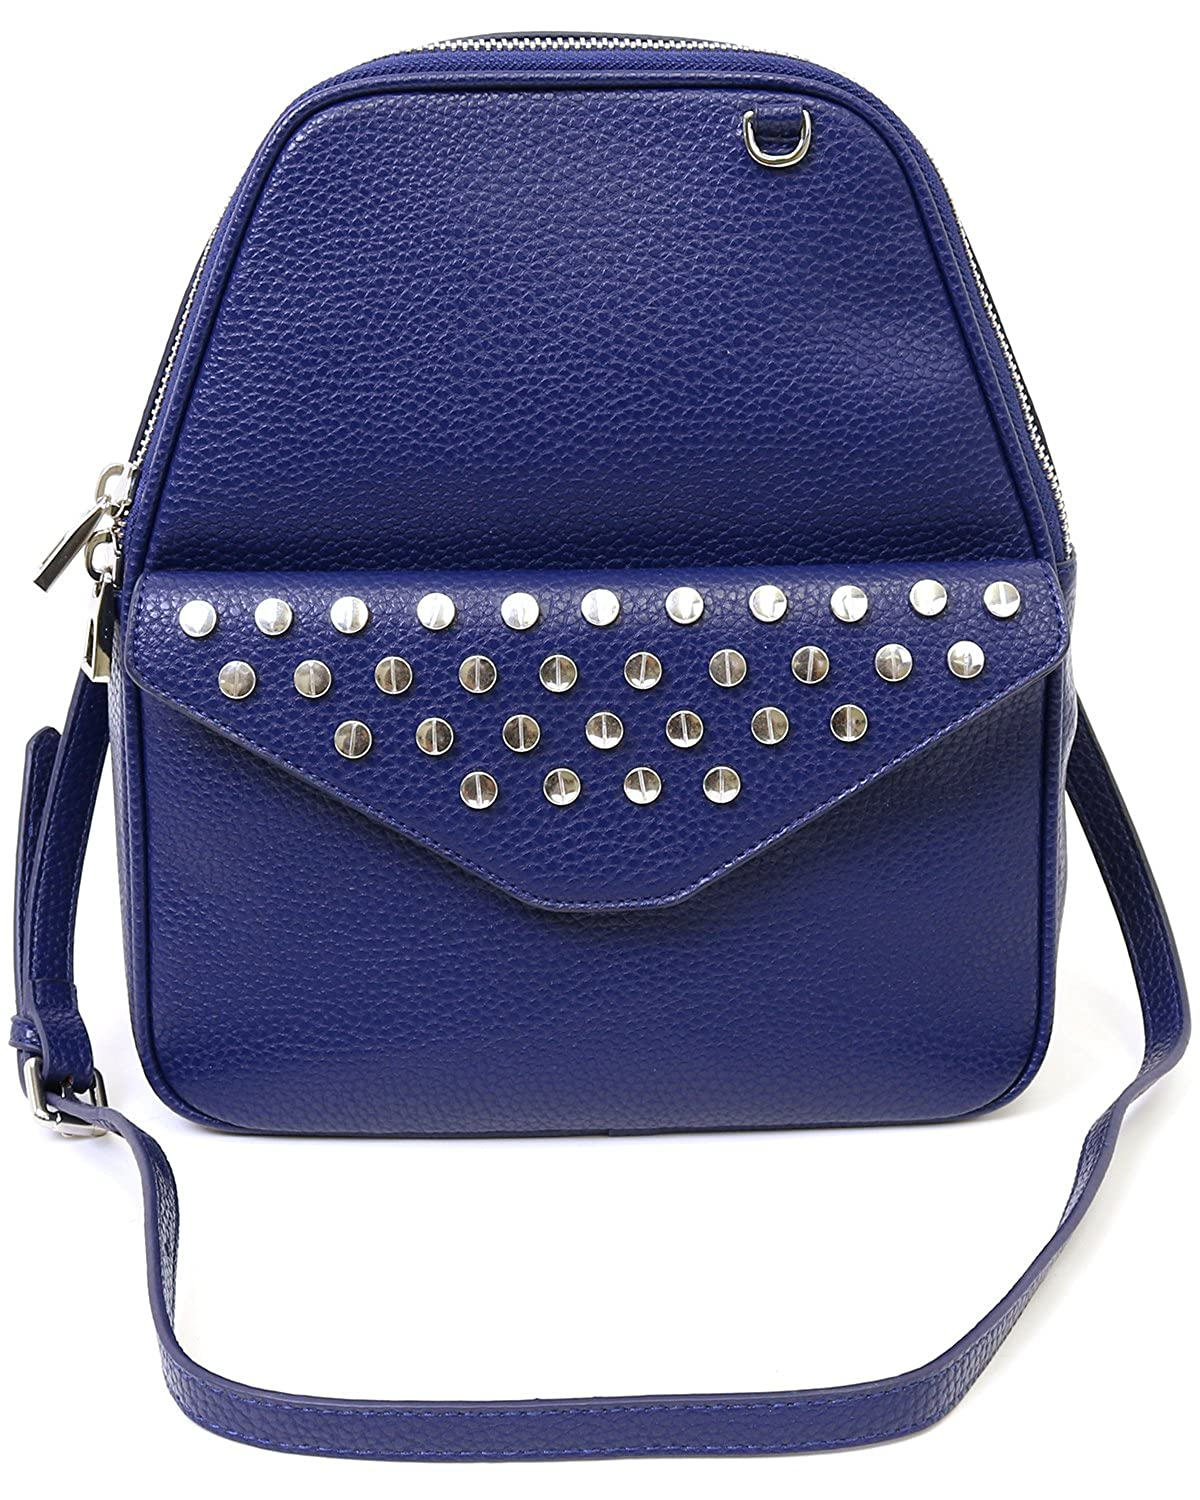 Vertigo Paris Toxic Shoulder Bag